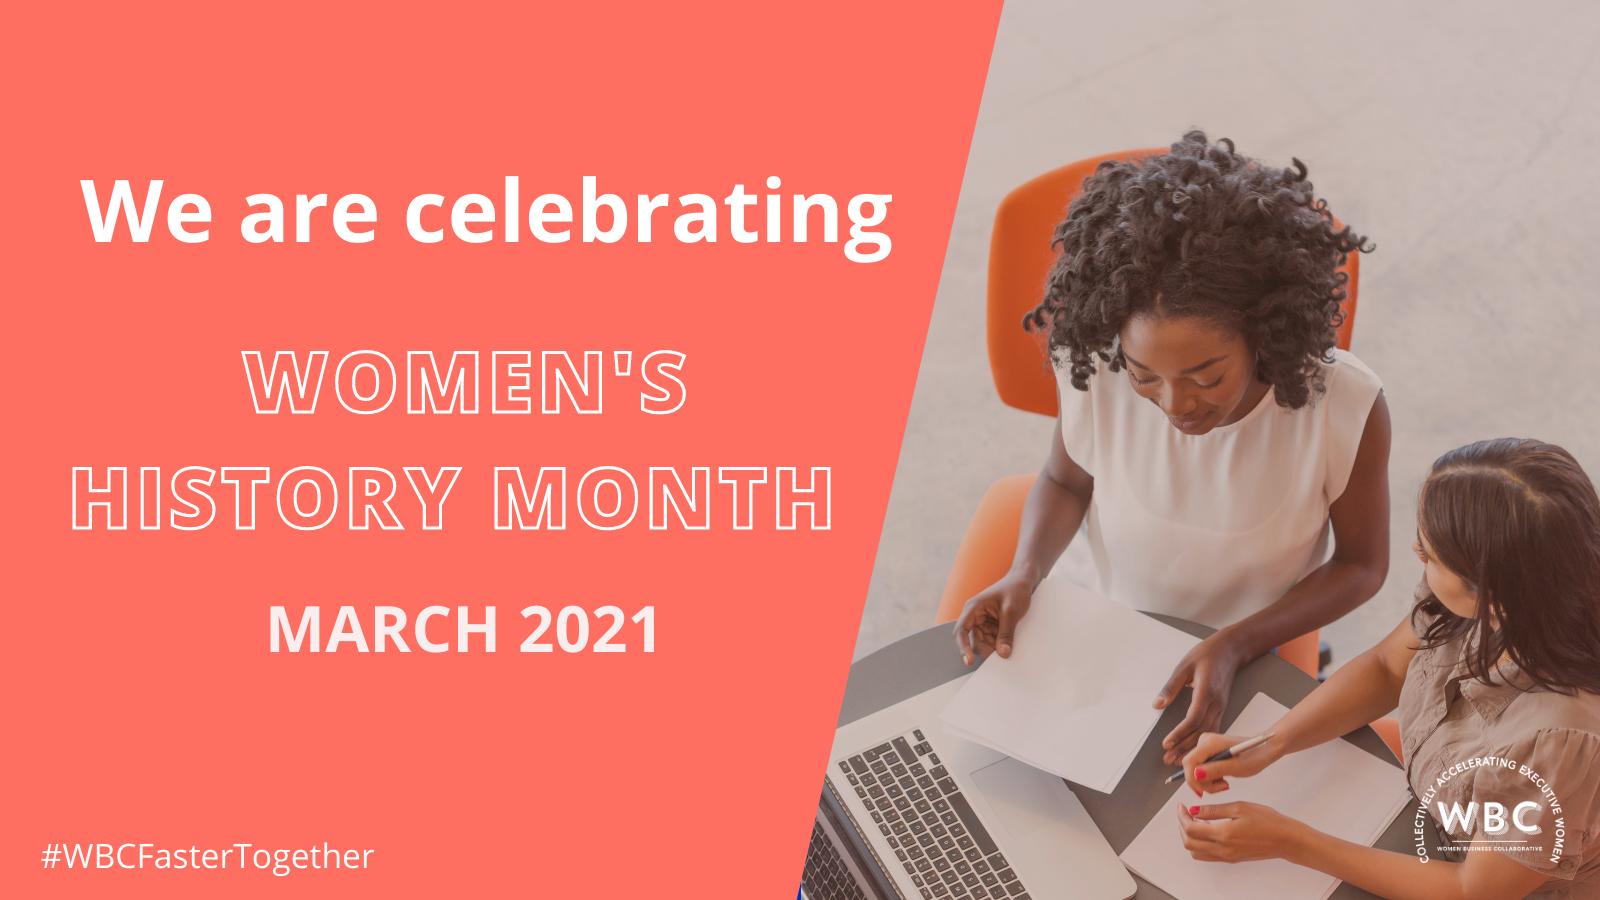 Recap of March 2021: Women's History Month Events